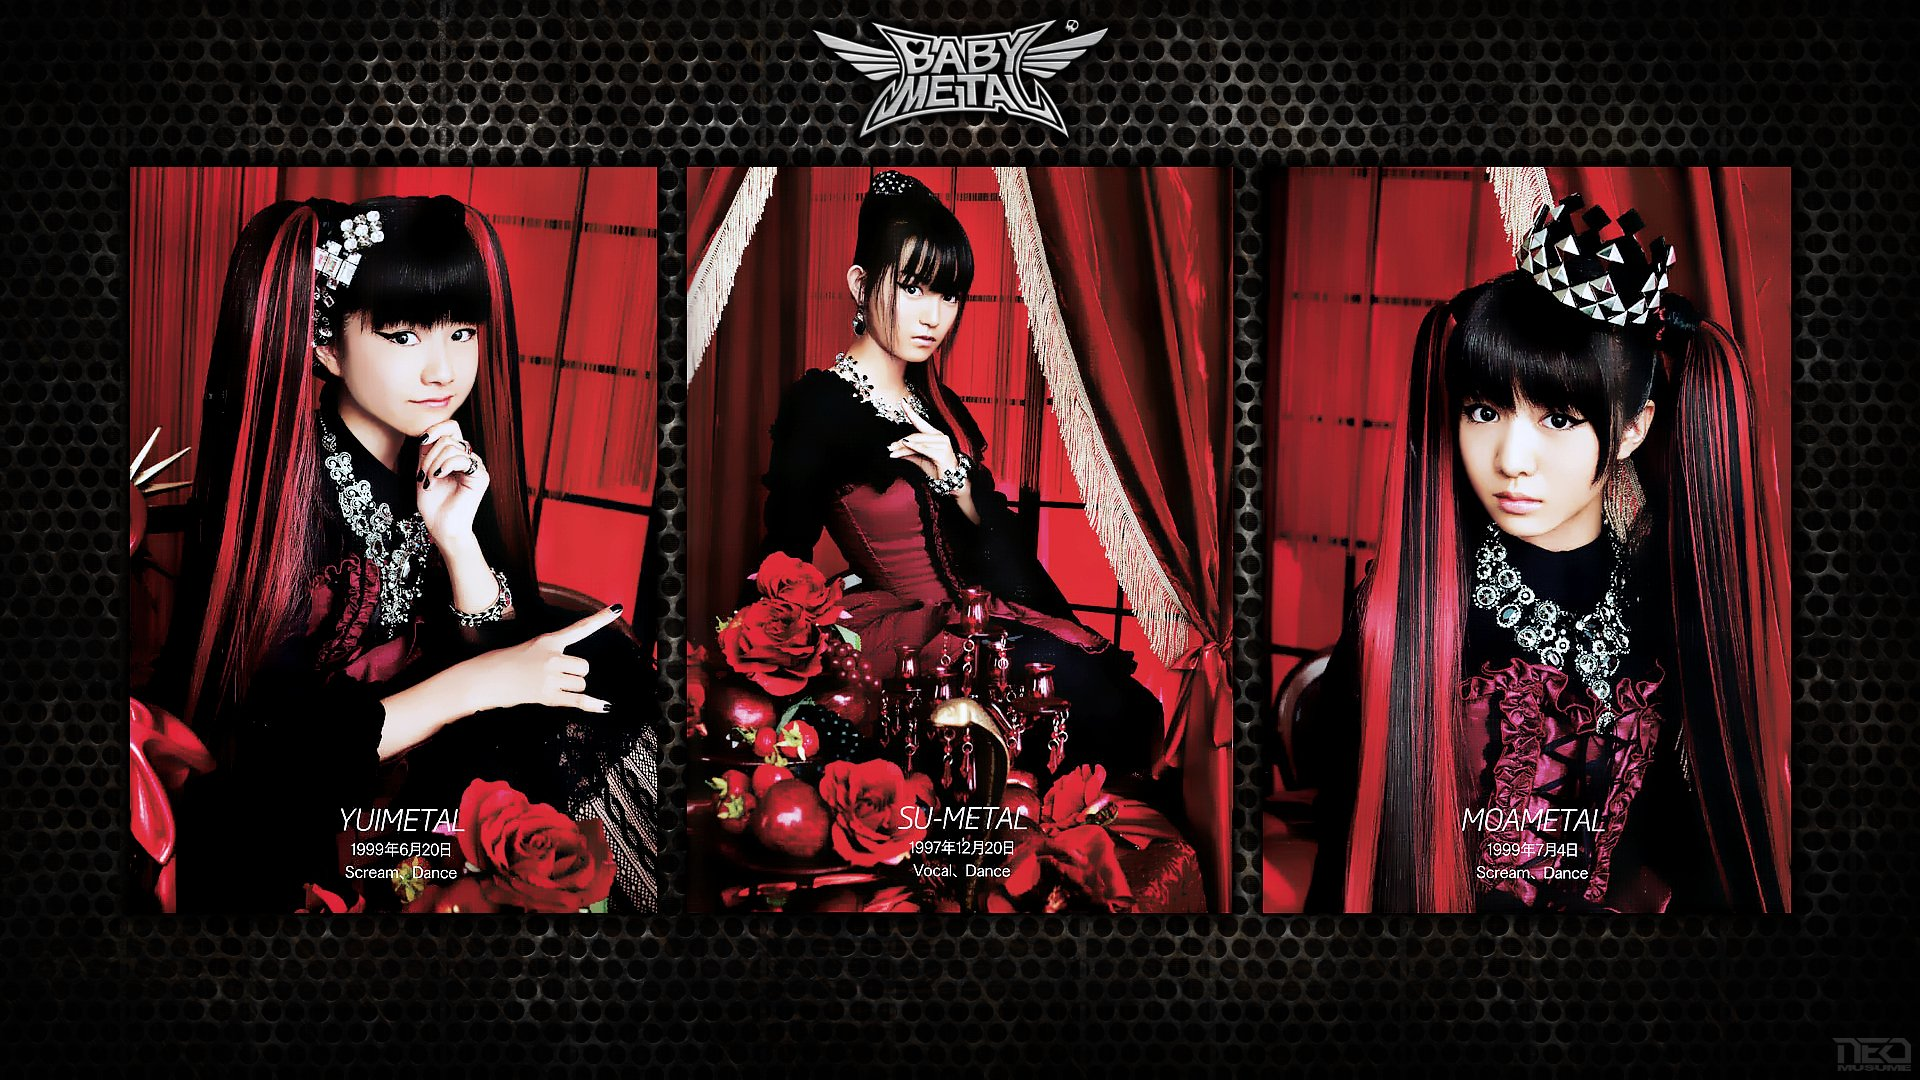 46 Babymetal Hd Wallpapers Background Images Wallpaper Abyss